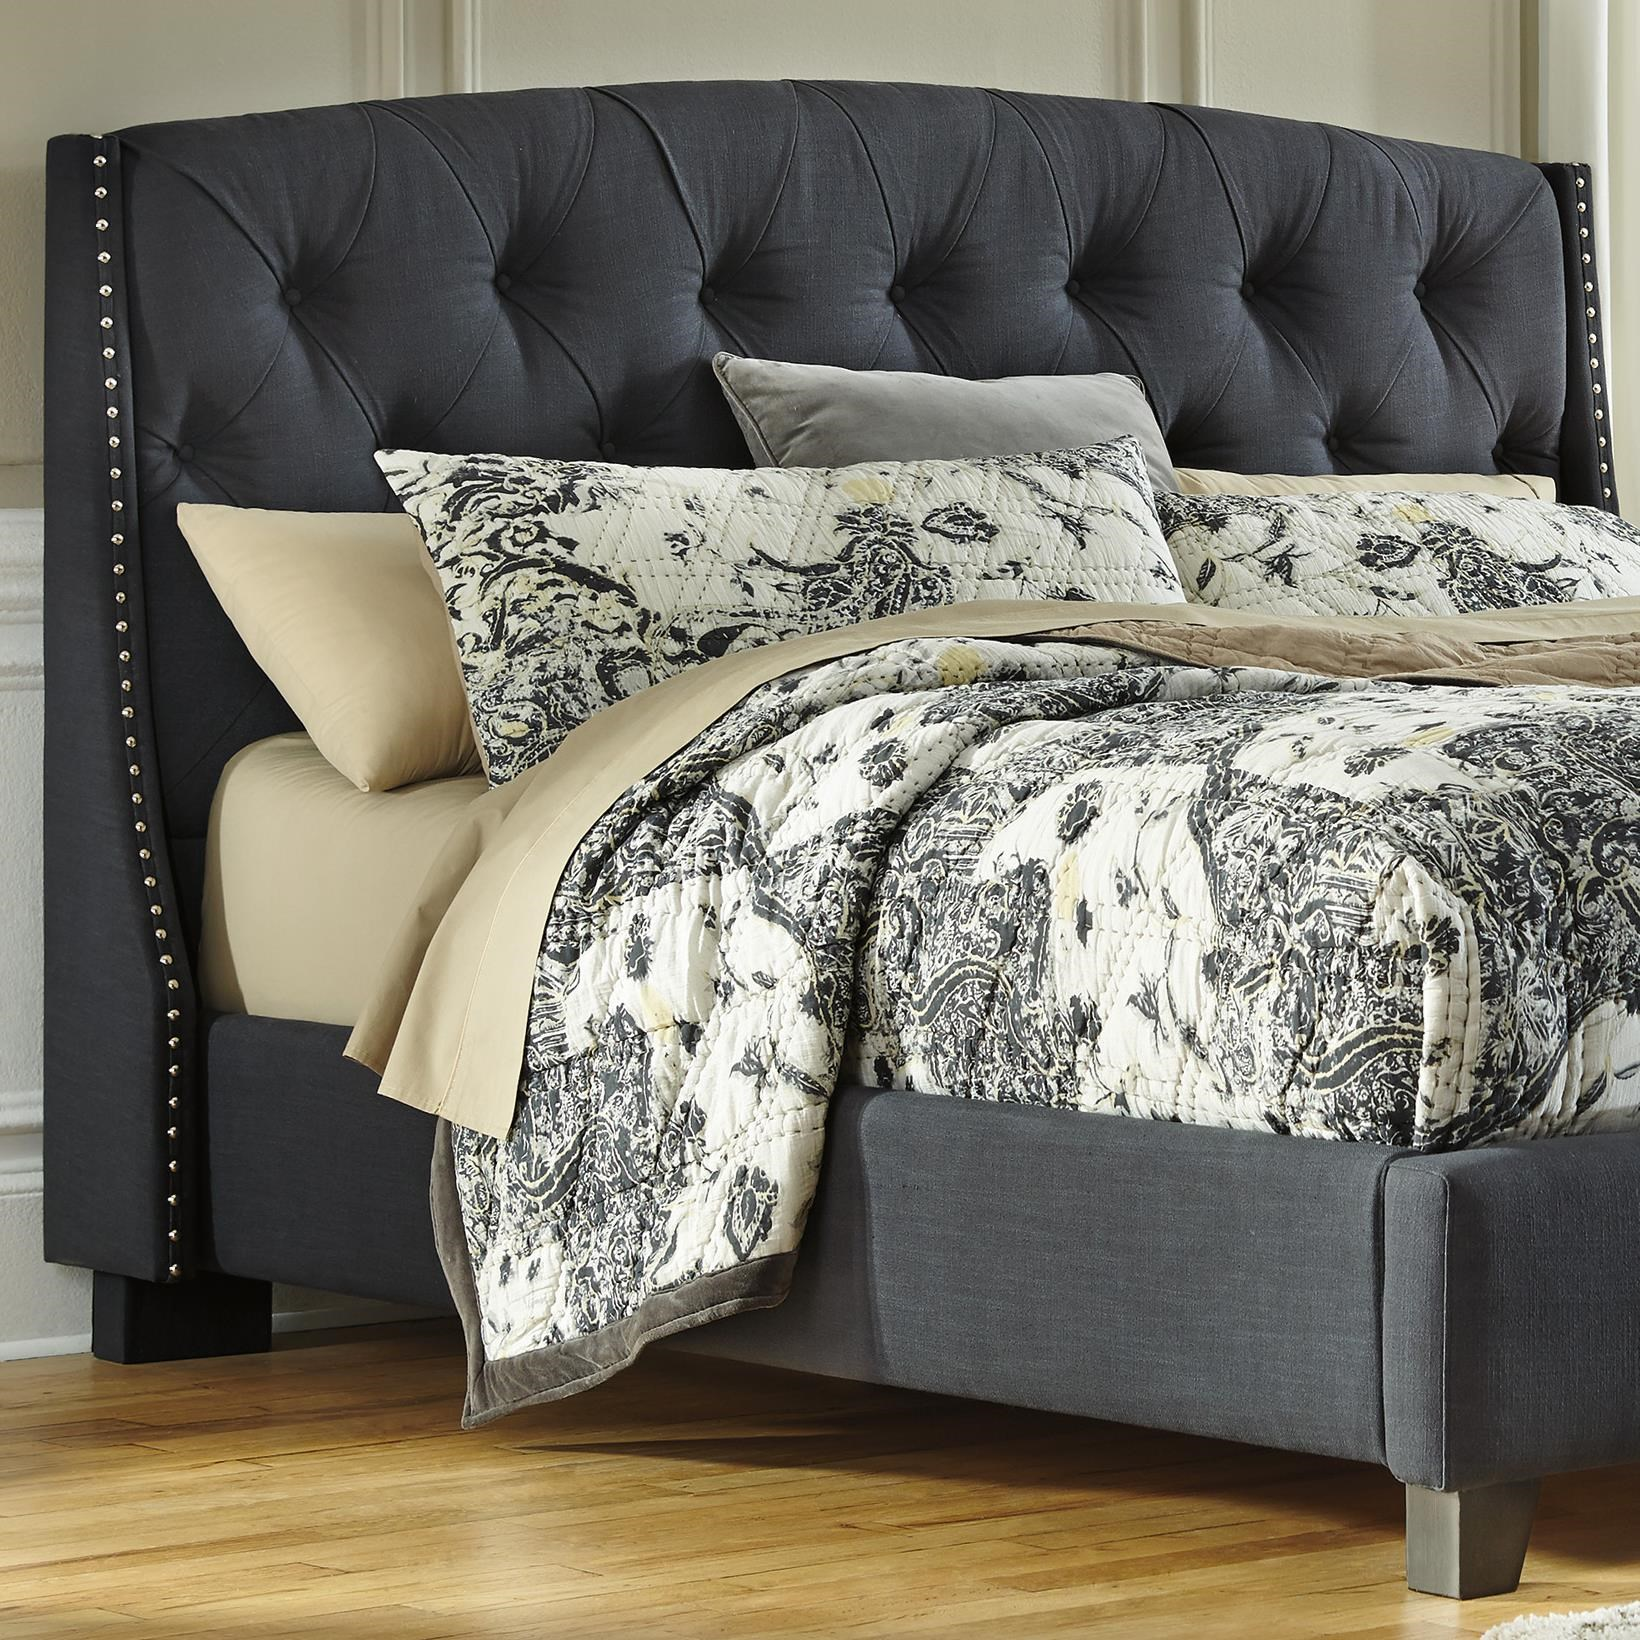 Interesting Signature Design By Ashley King Upholsteredheadboard Signature Design By Ashley Kasidon King Upholstered King Vs California King Bed Frame King Vs California King Vs Queen houzz 01 King Vs California King